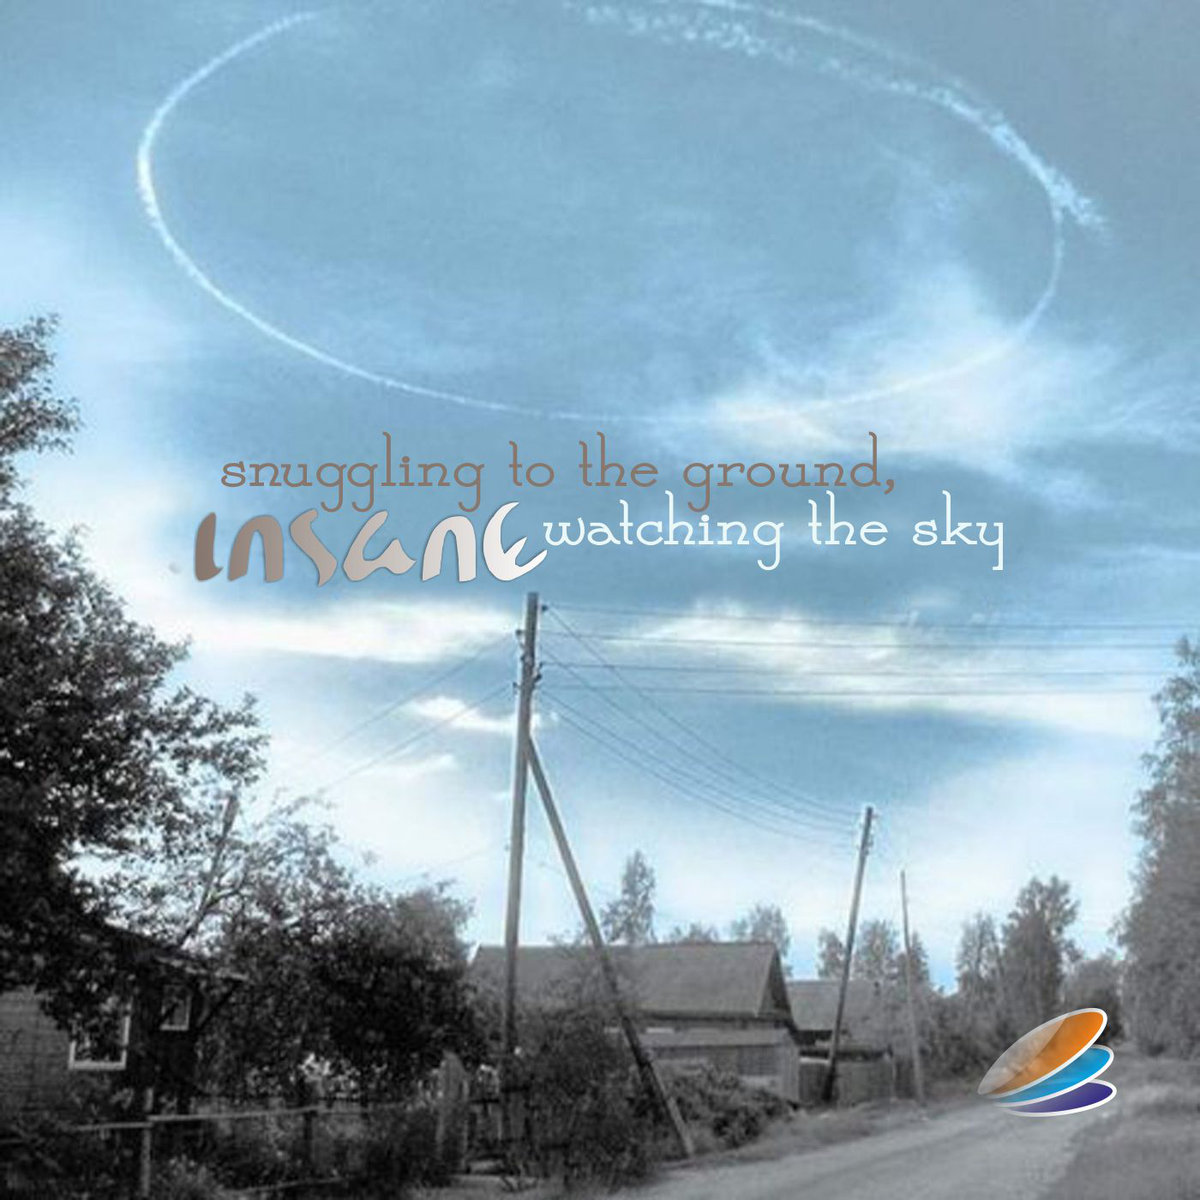 Insane - Snuggling To The Ground, Watching The Sky